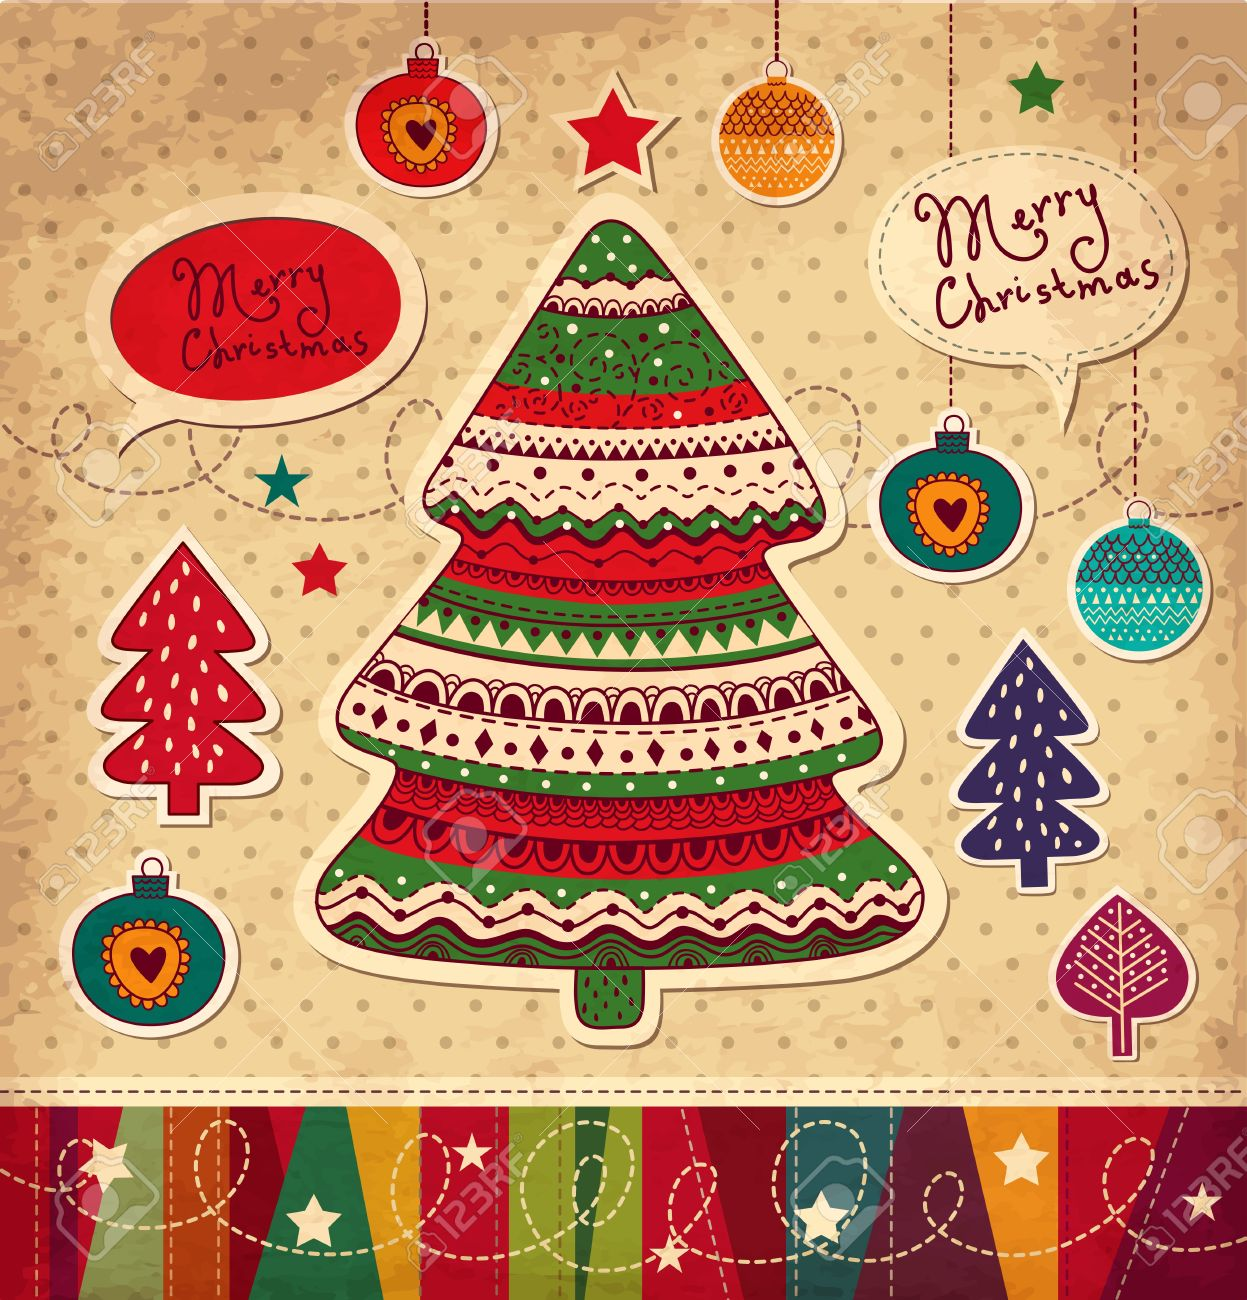 Vintage Christmas Vector Card With Christmas Tree Royalty Free ...